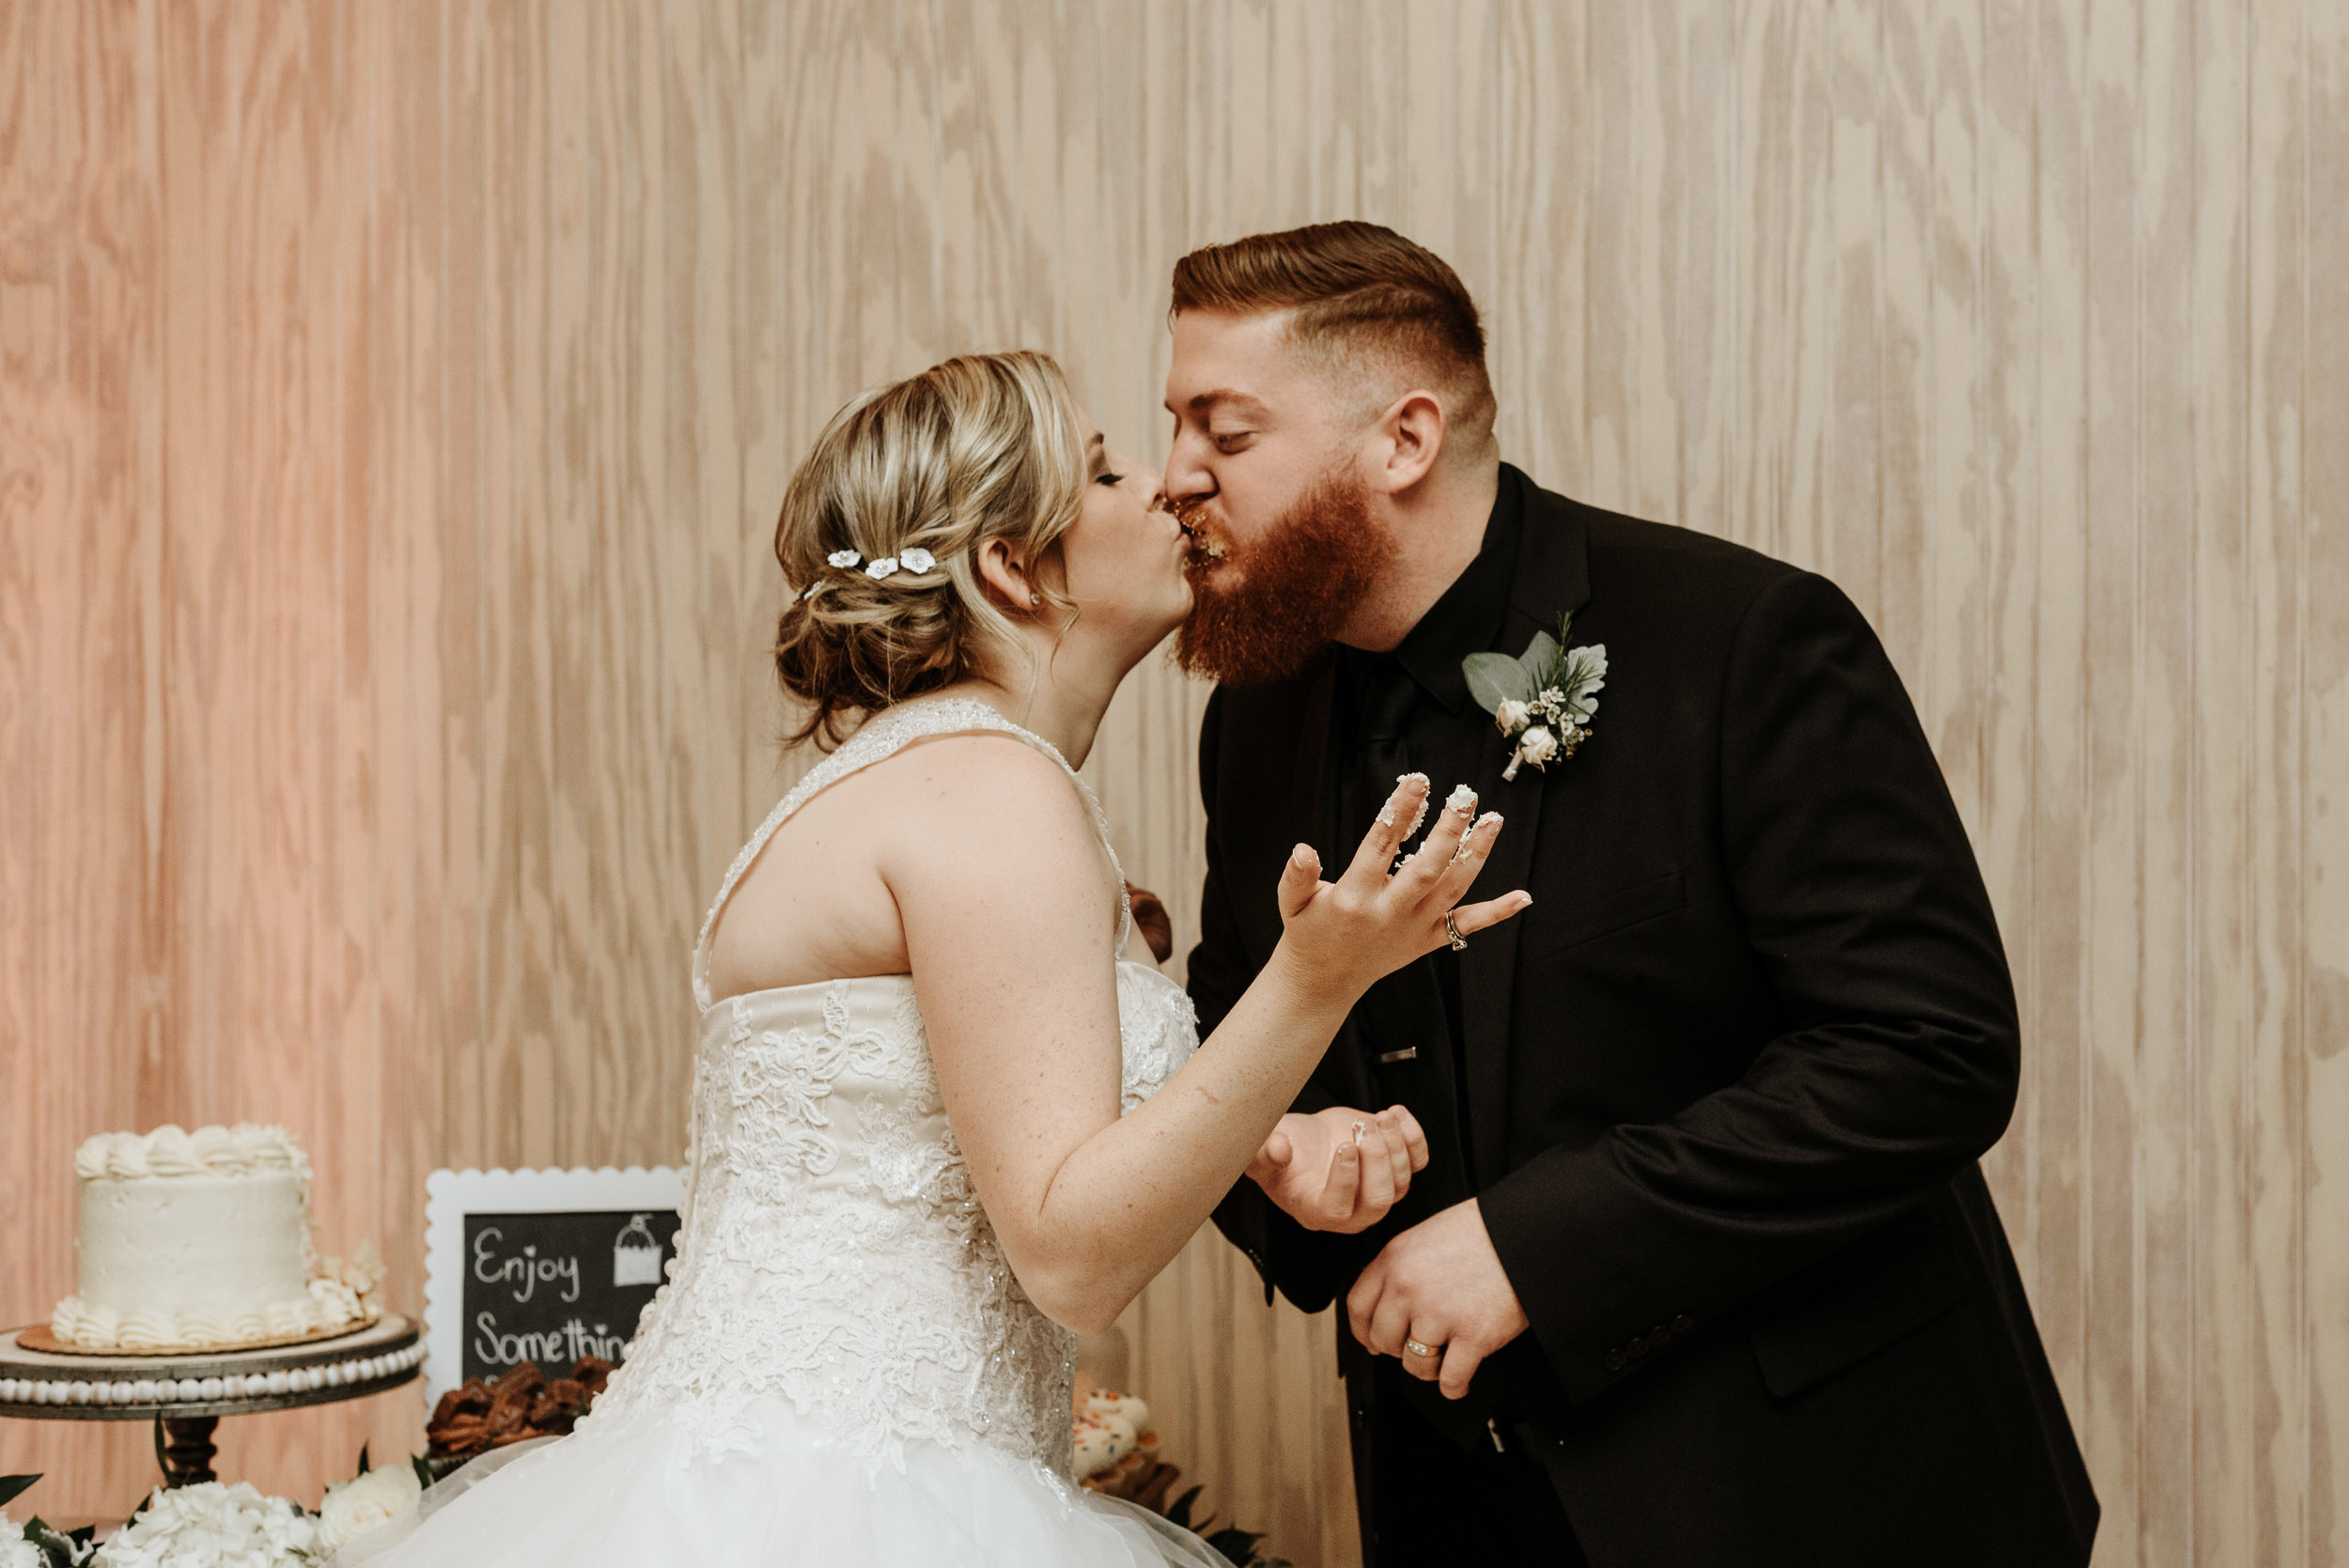 Lauren-Bobby-Wedding-Previews-7822.jpg